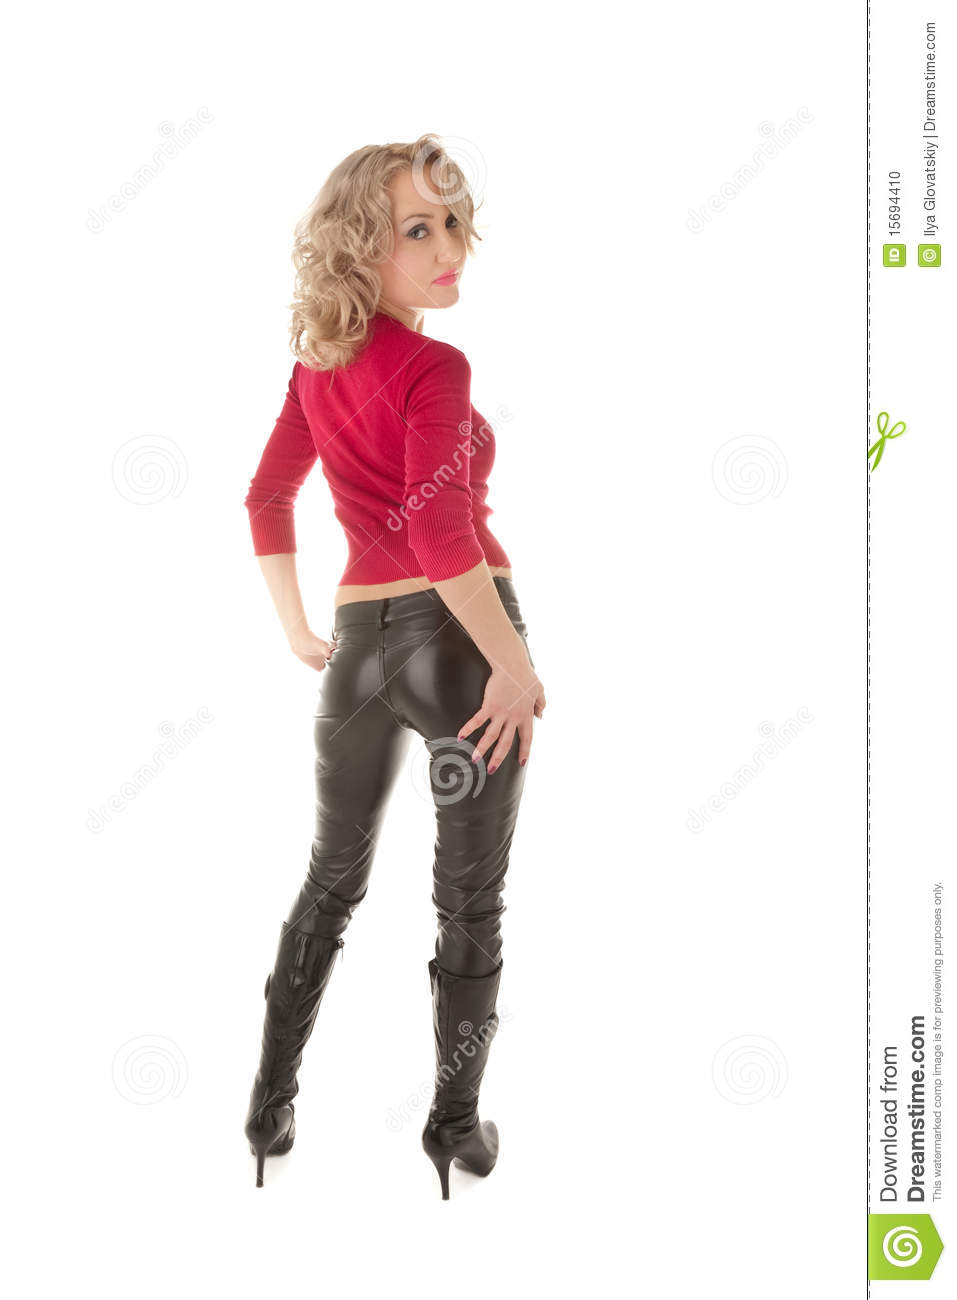 Woman Standing And Looking Back Stock Photo - Image: 15694410